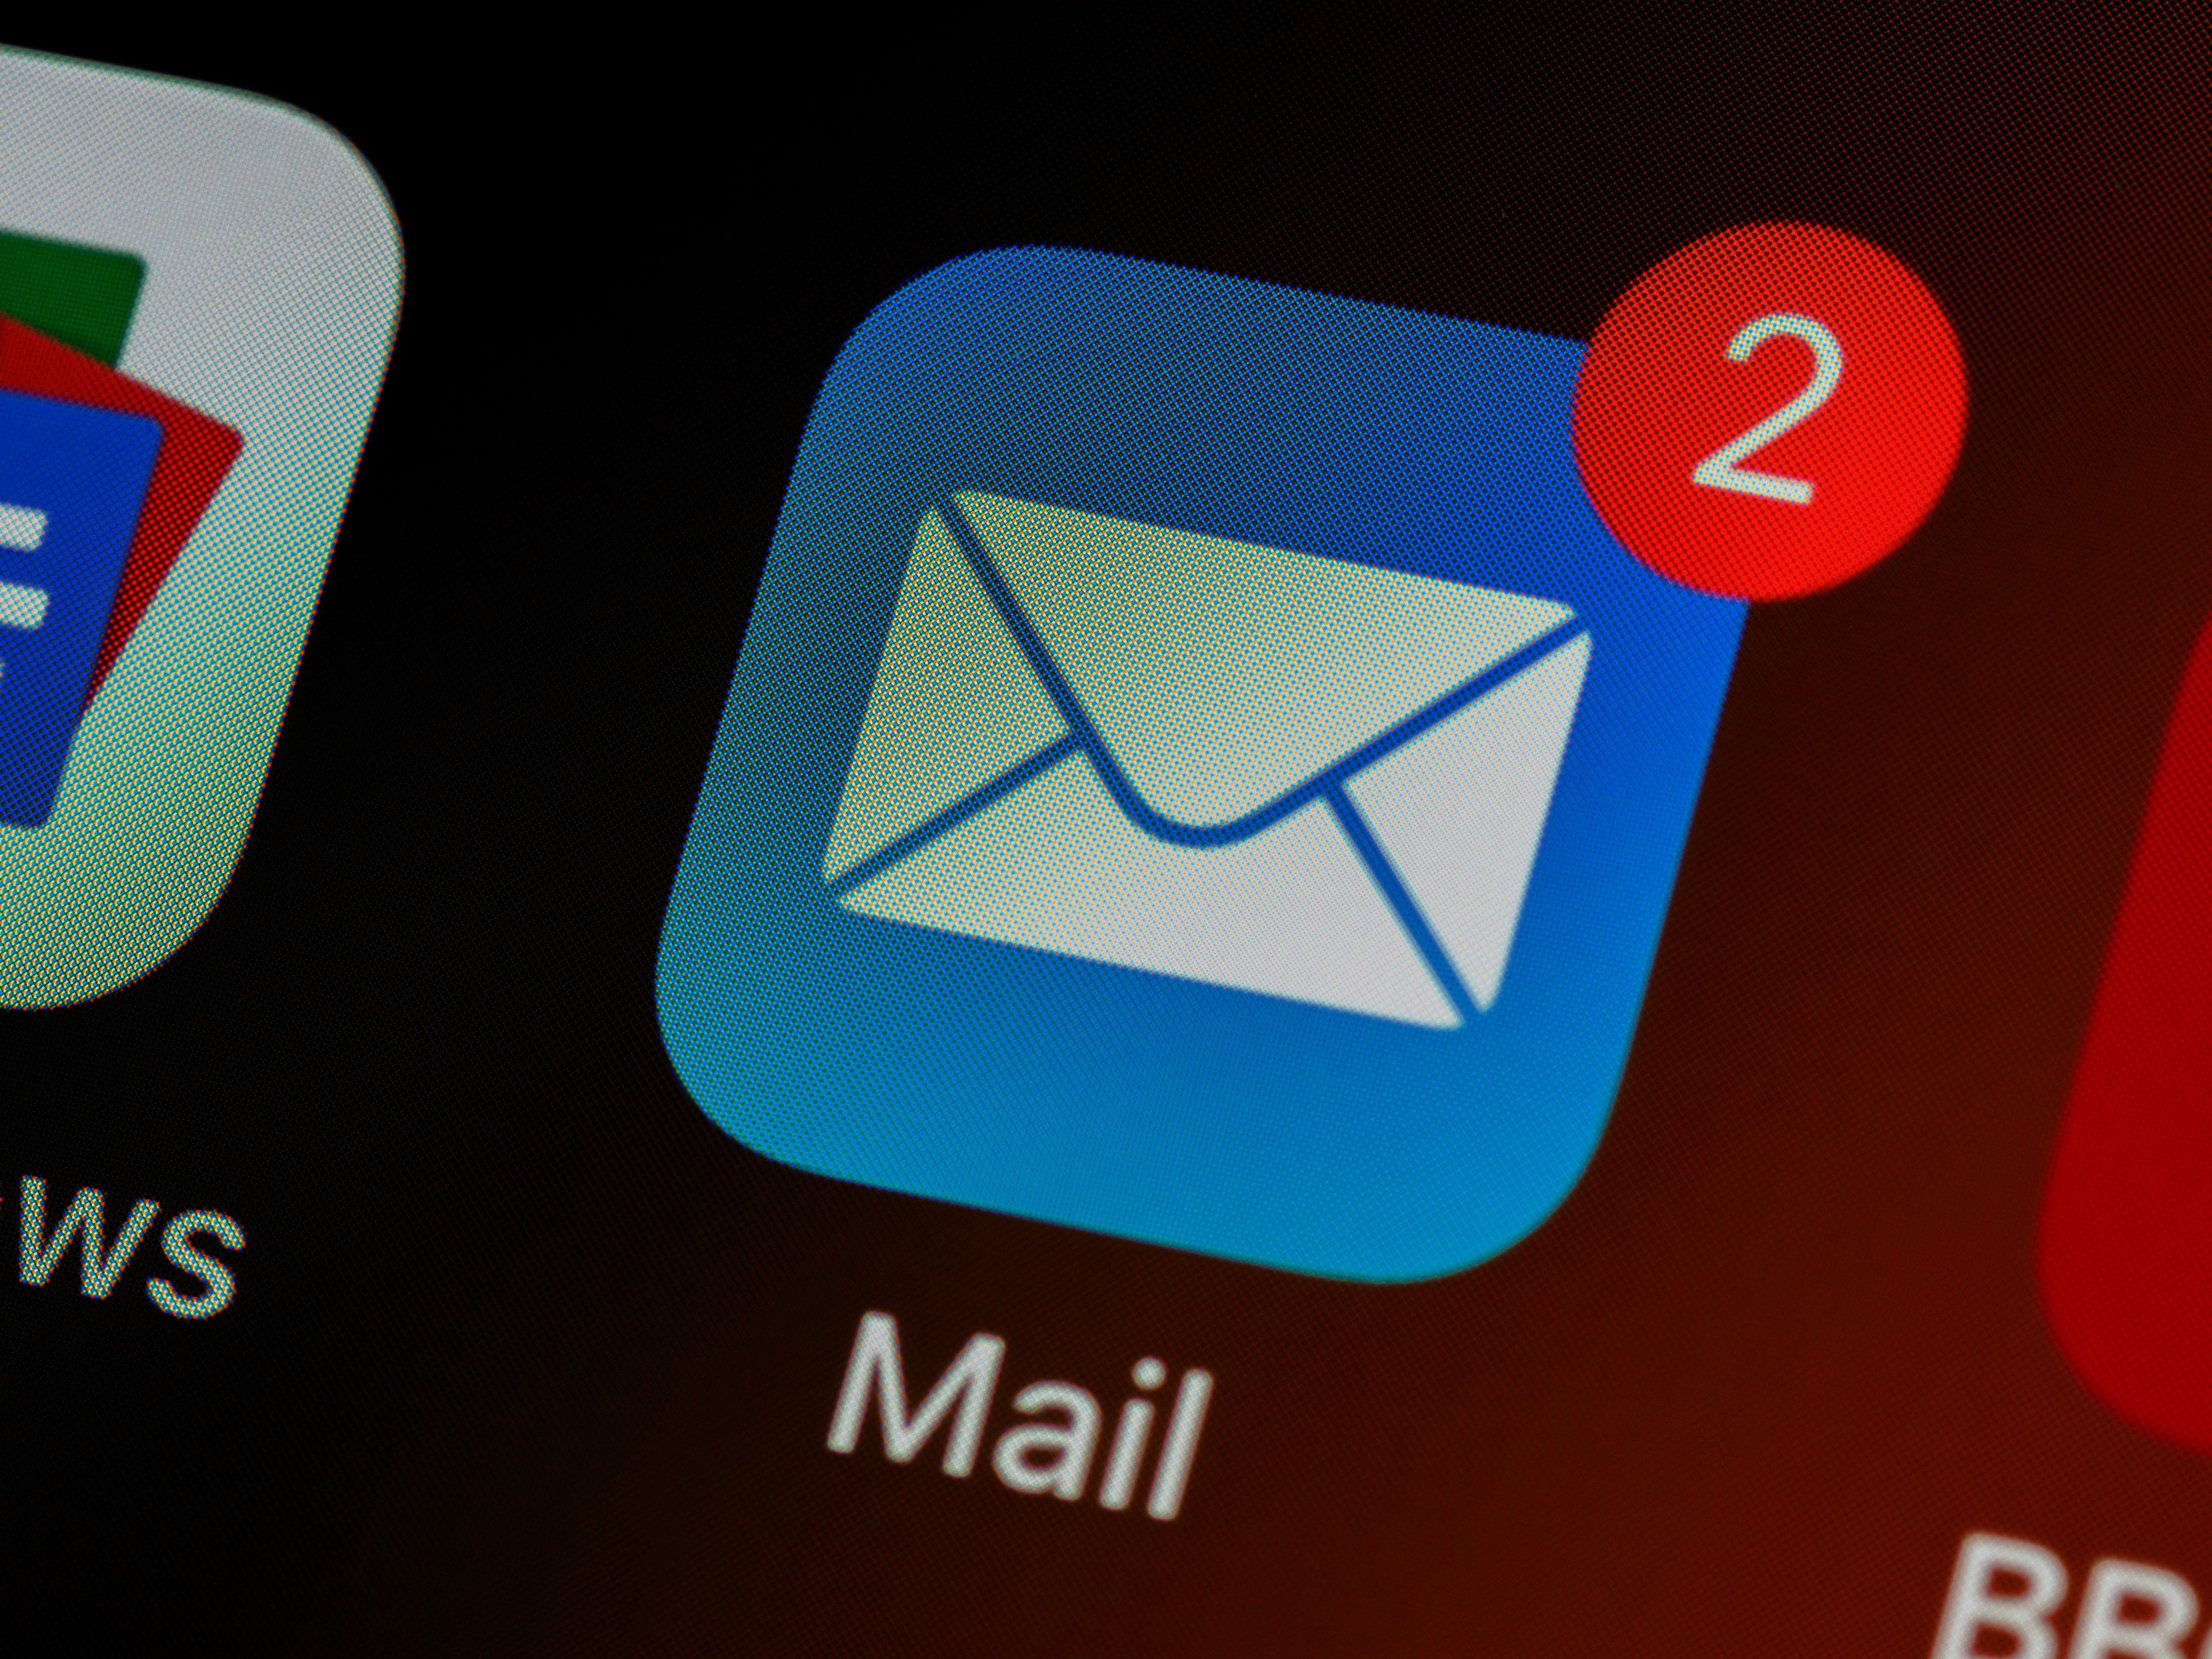 Dismissal by SMS or email may not be unlawful – but it's extremely unwise